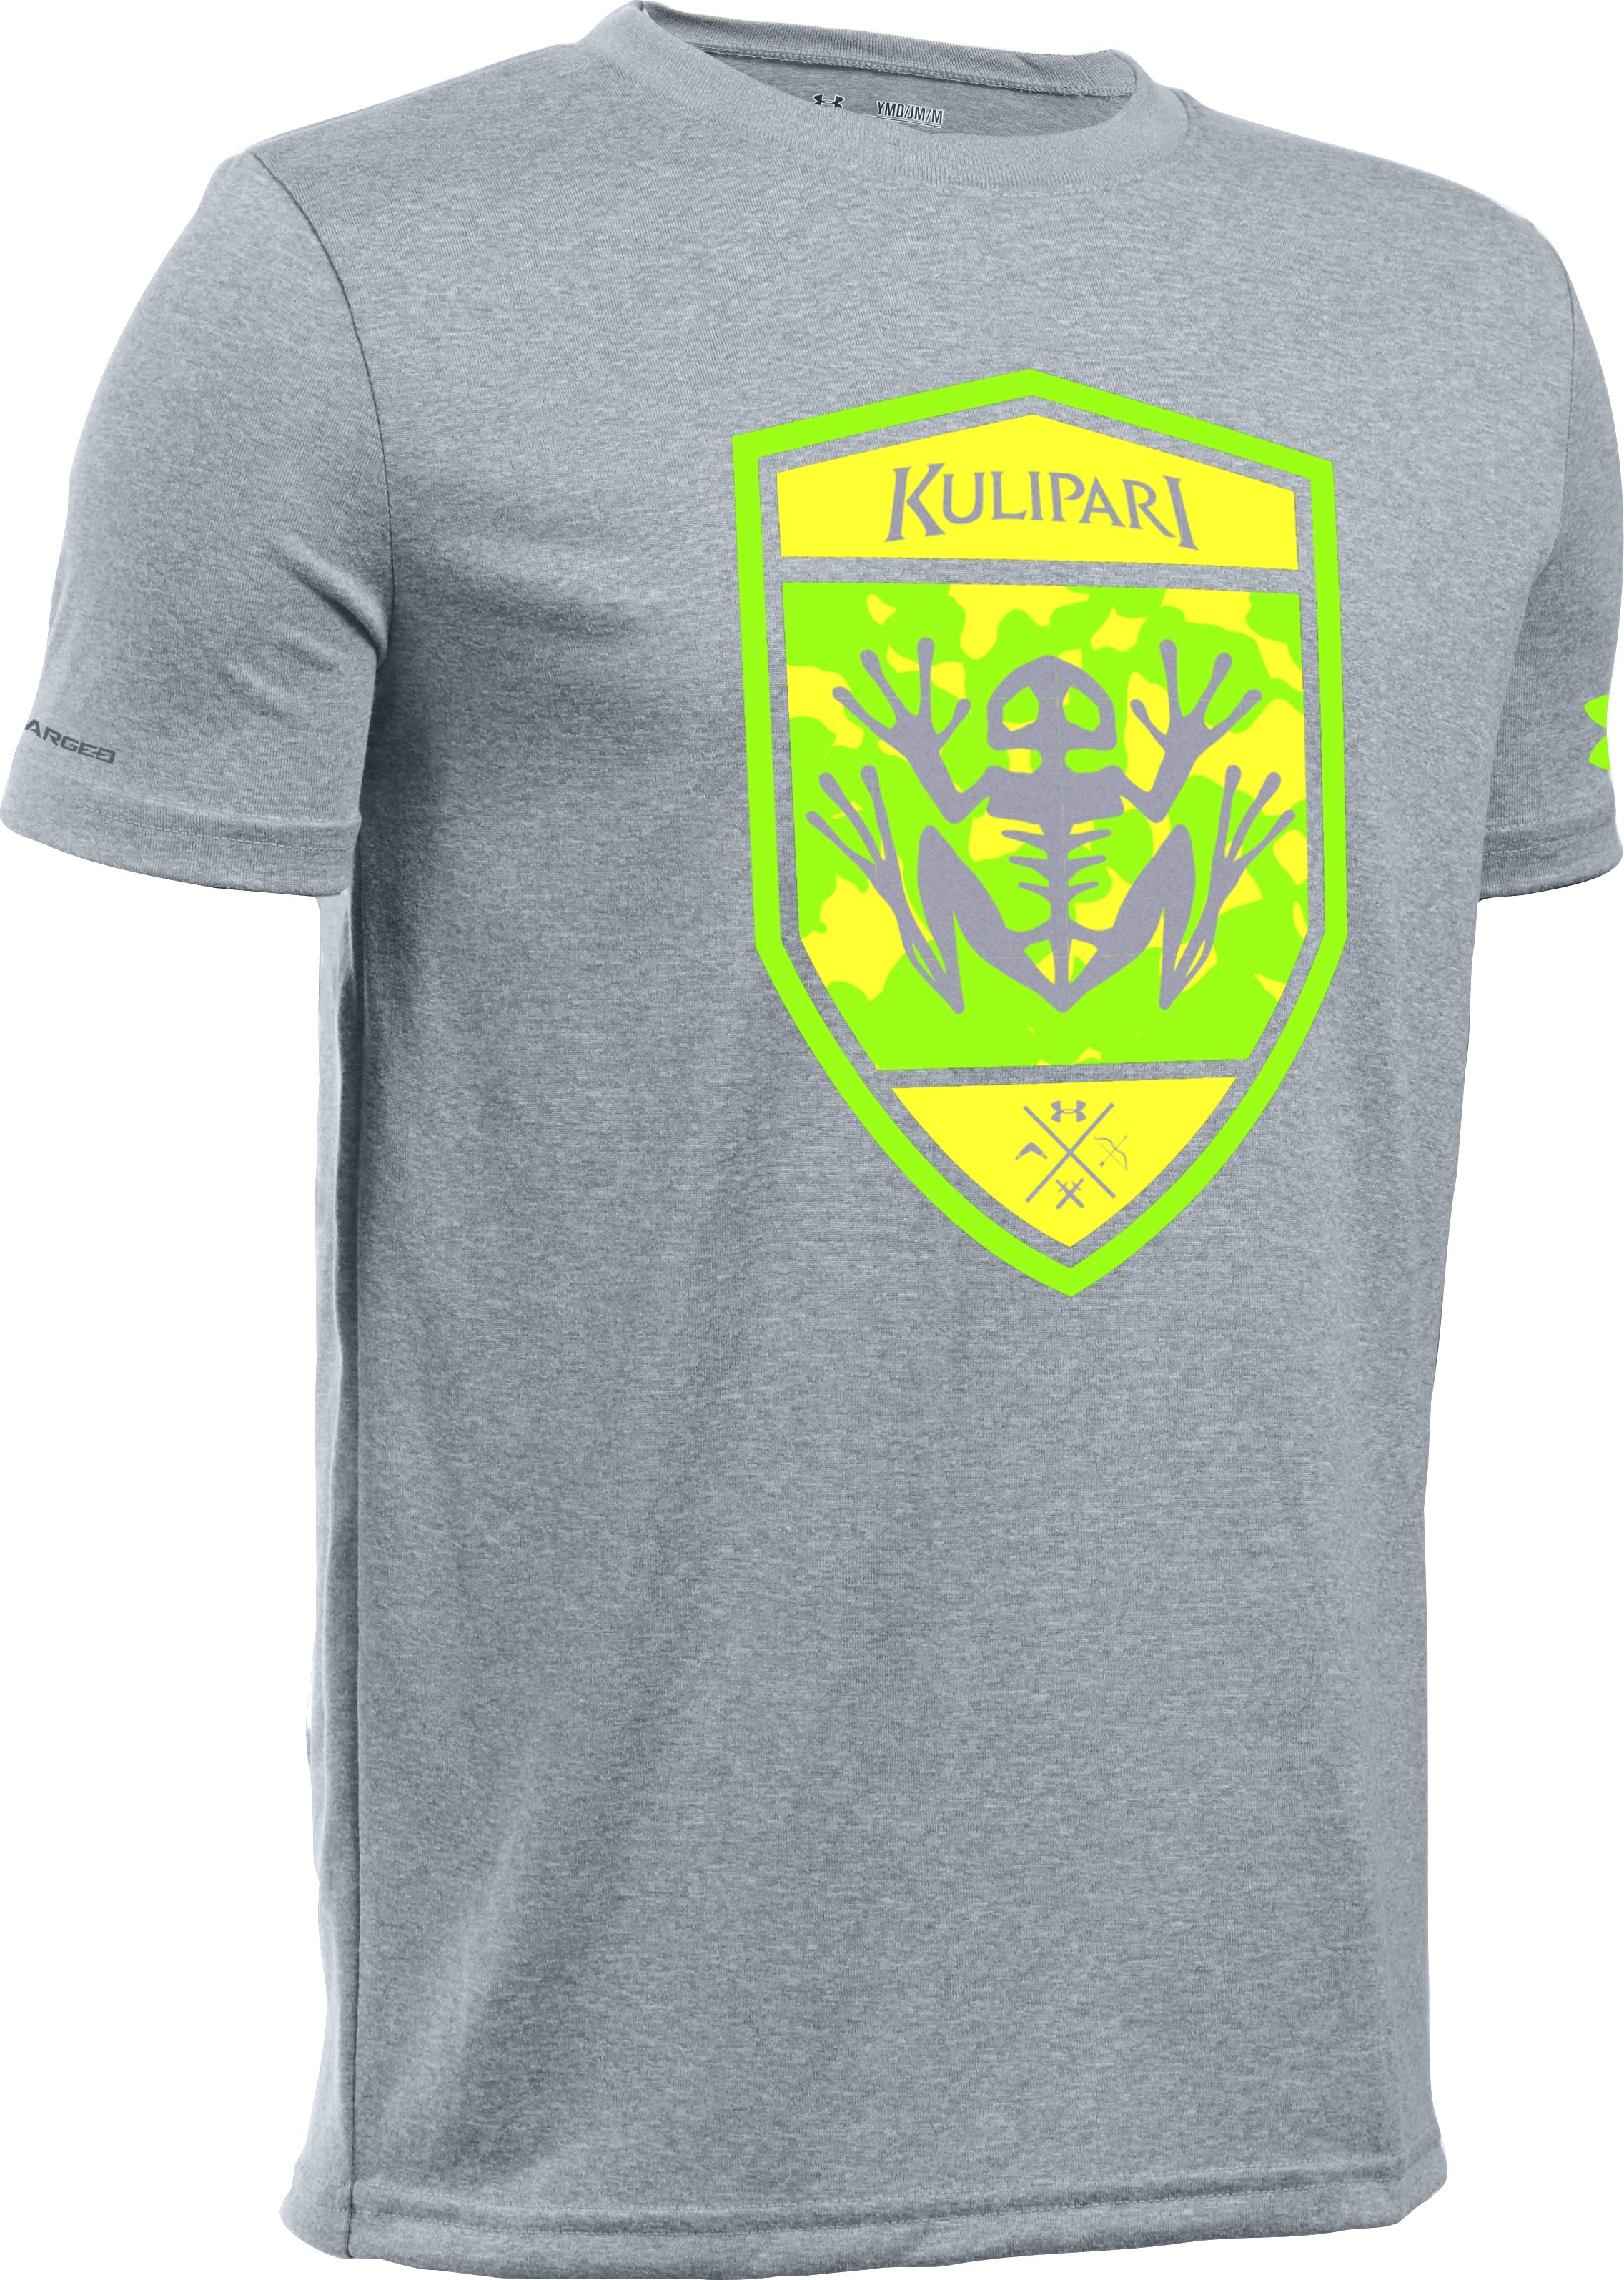 Kids' Kulipari UA Frog Battalion T-Shirt, True Gray Heather, zoomed image